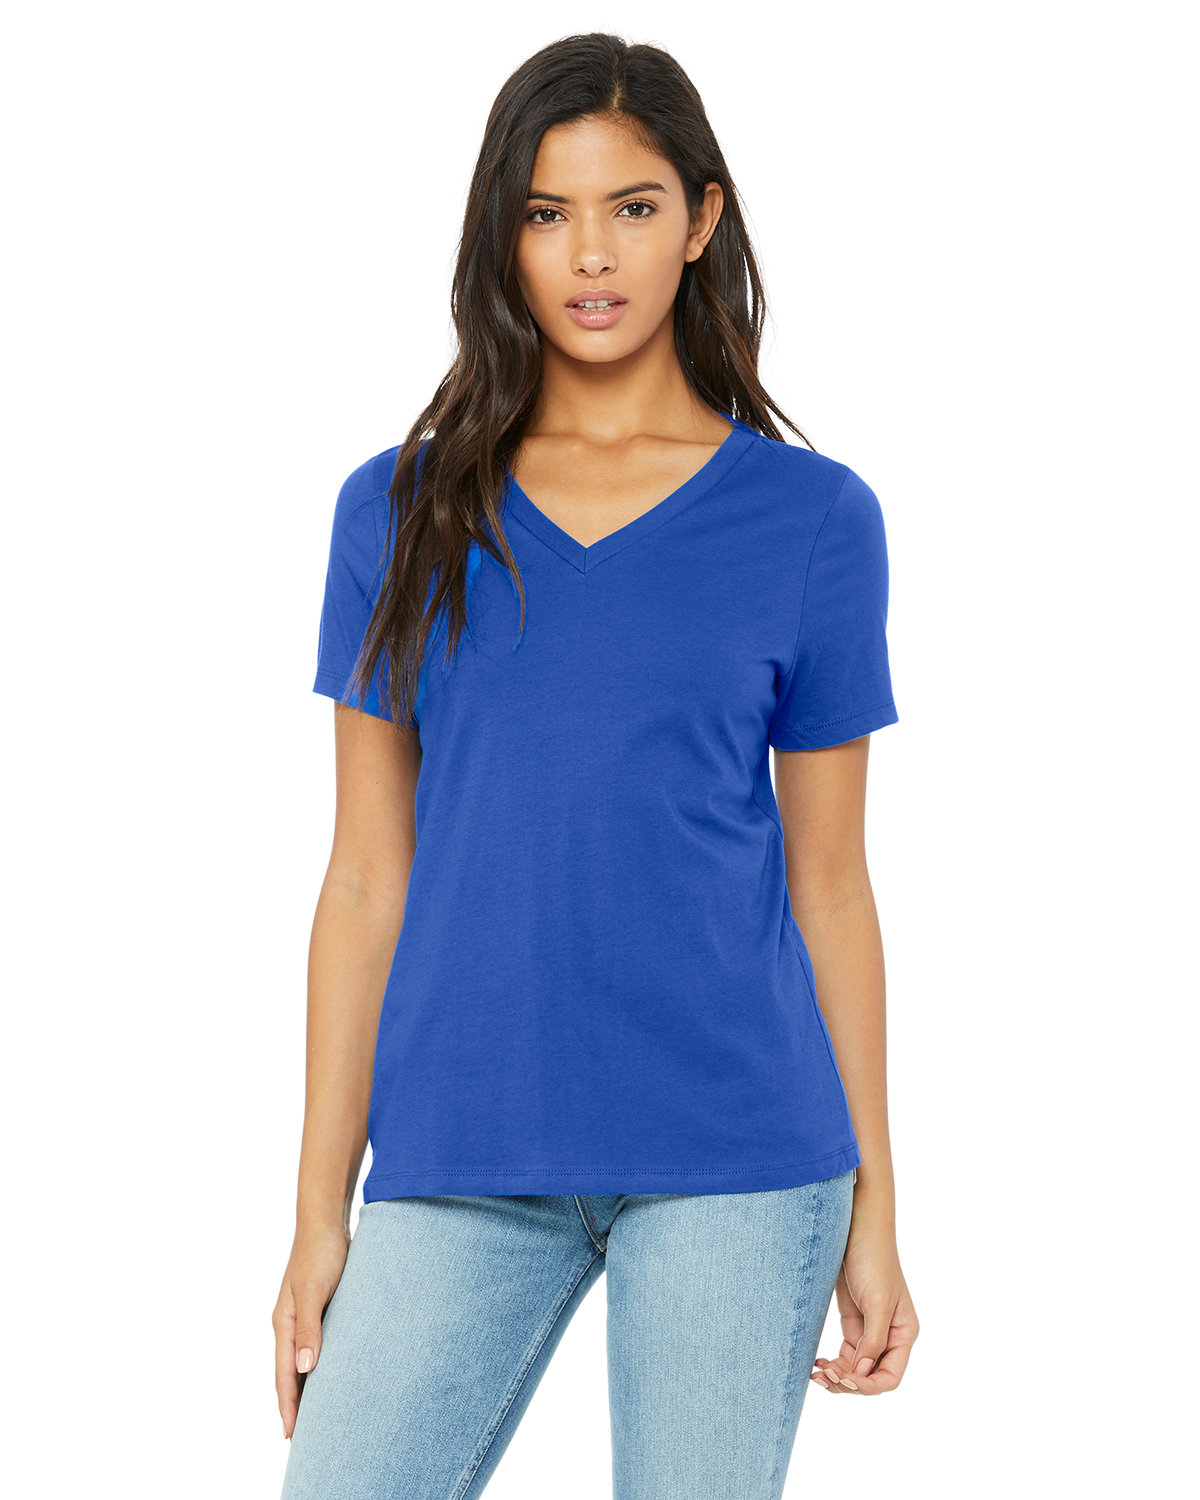 Bella + Canvas Ladies' Relaxed Jersey V-Neck T-Shirt TRUE ROYAL